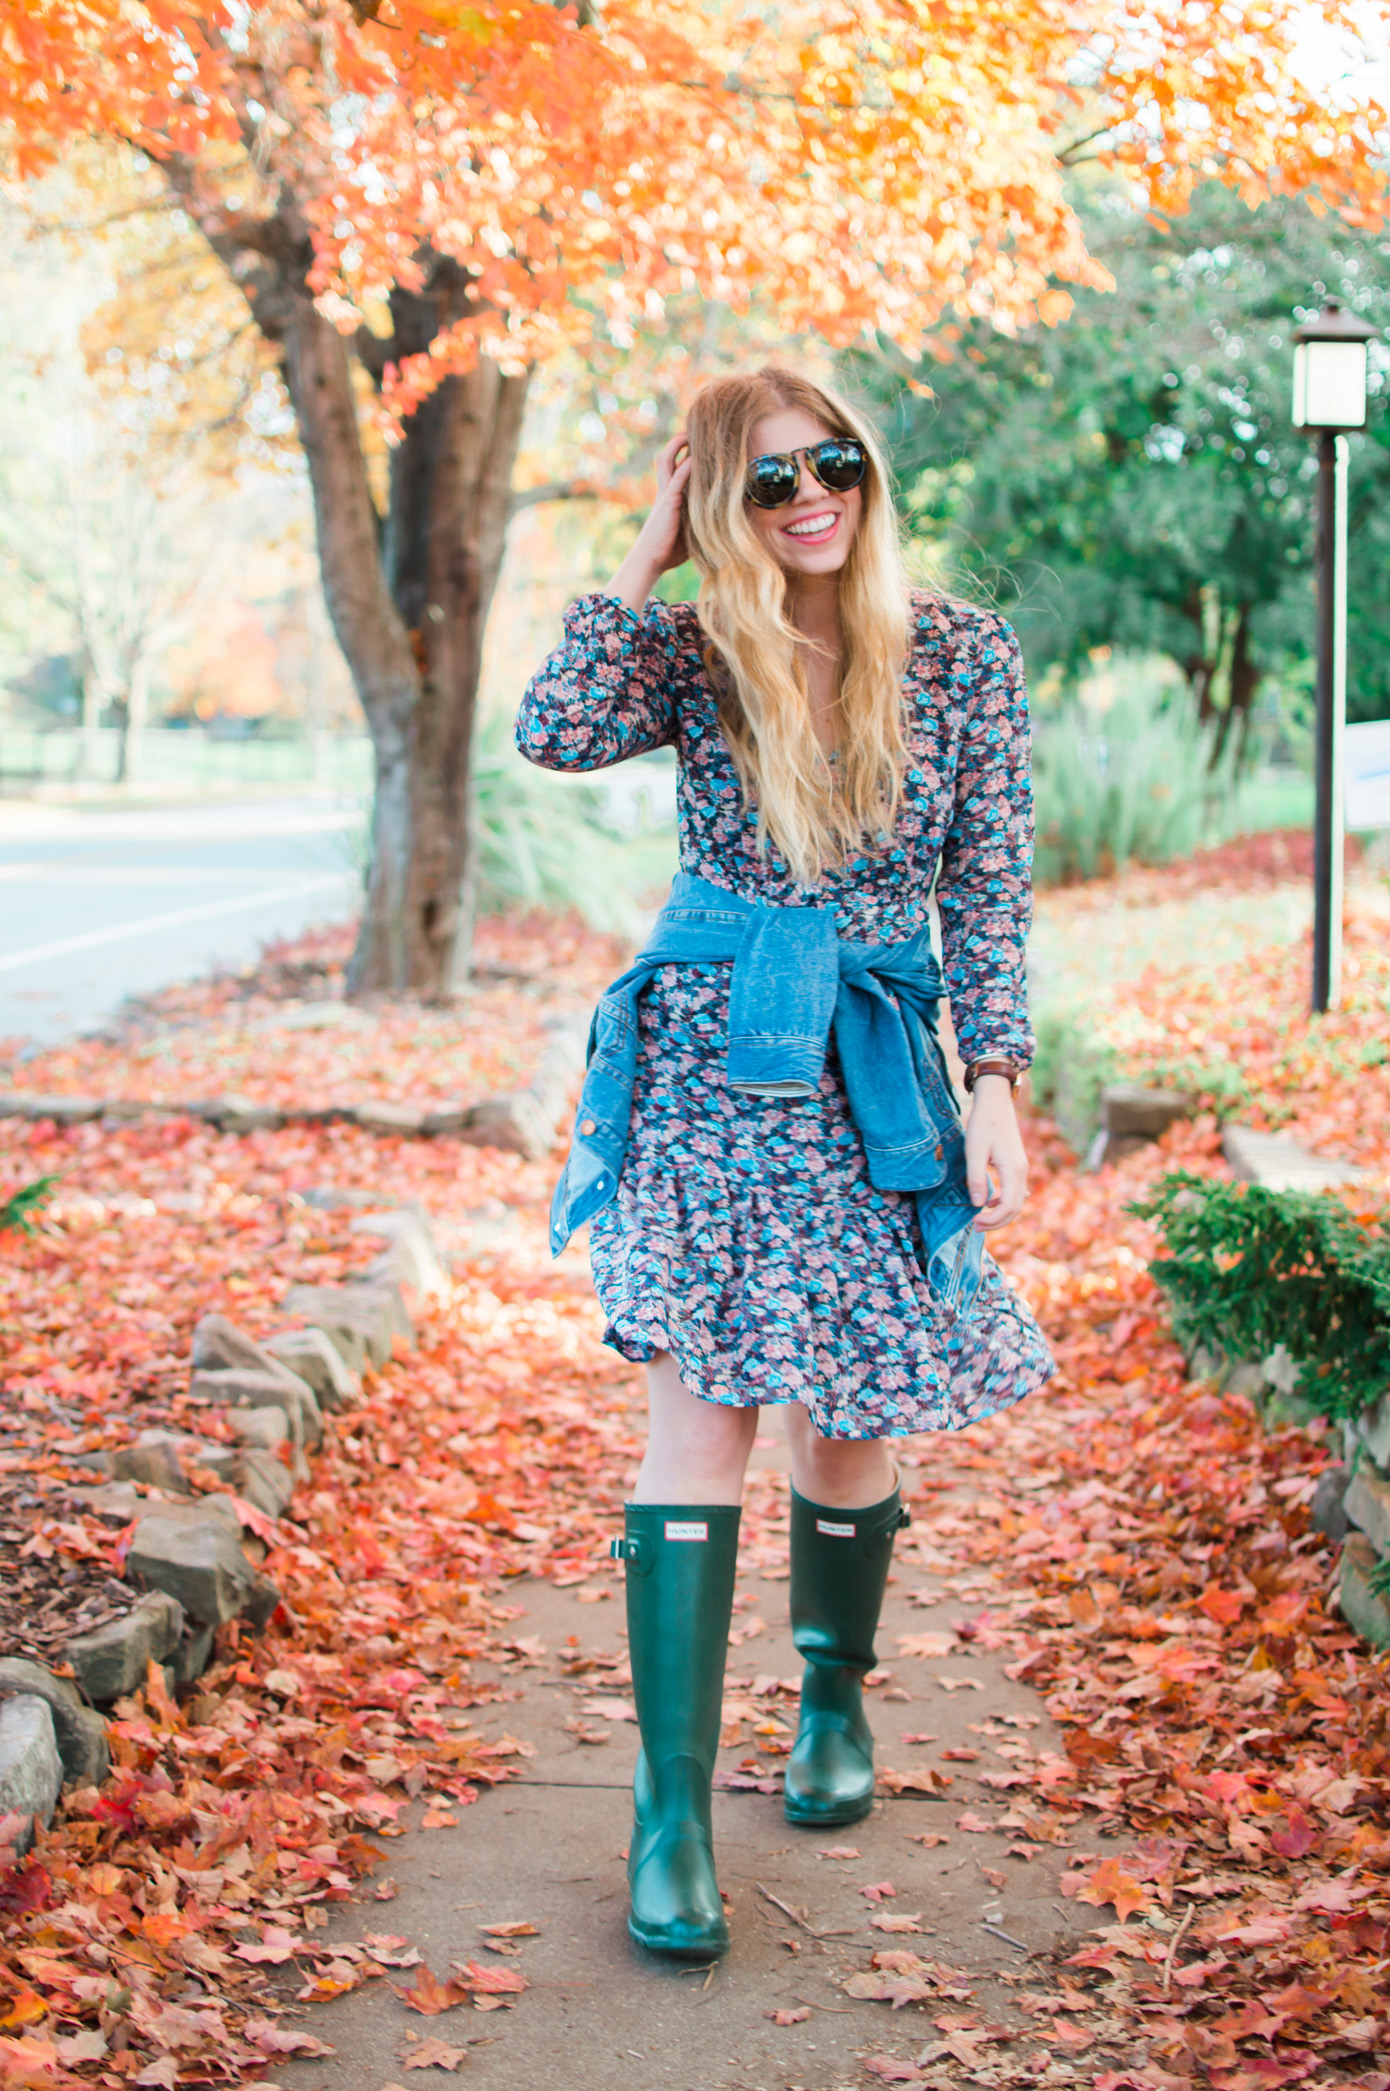 J.Crew Ruffle Hem Dress in Floral Paisley | Dress with Hunter Boots | Louella Reese Life & Style Blog